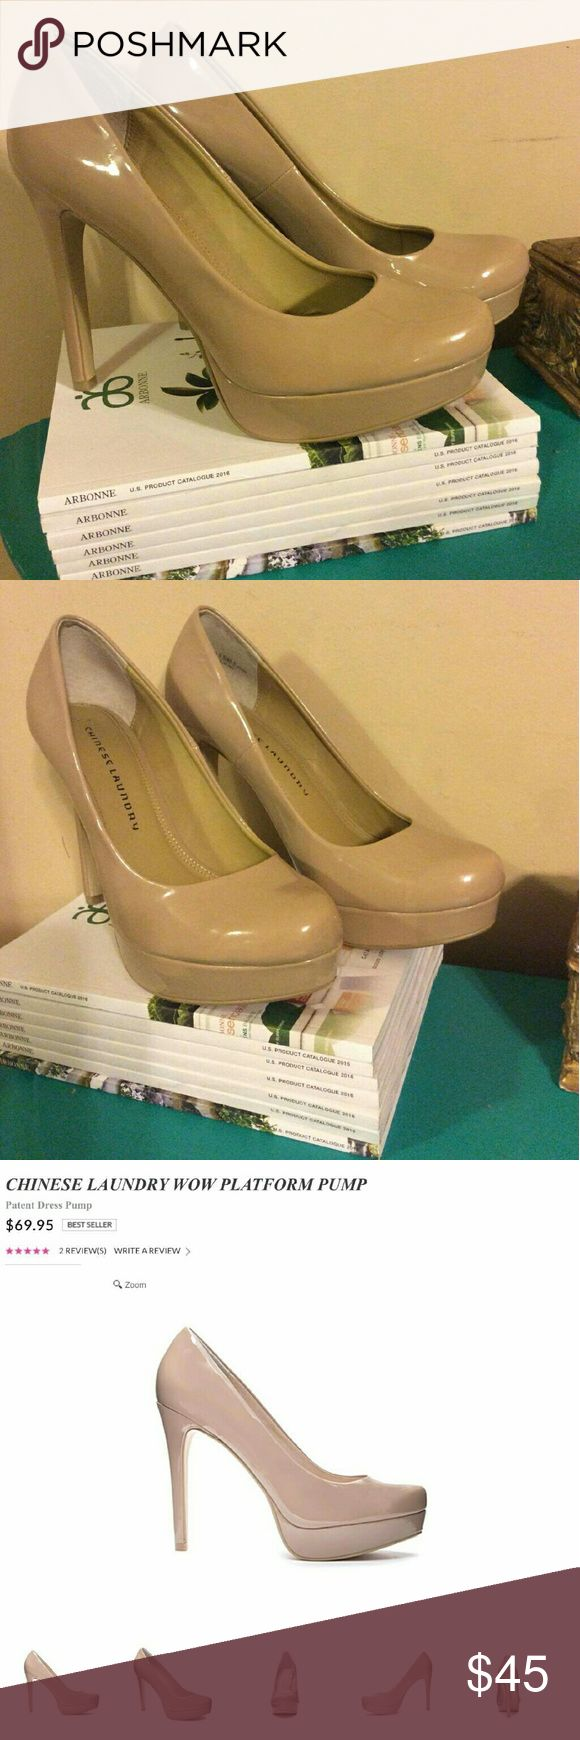 Chinese Laundry platform Chinese laundry platform in great condition.  Barely used. Chinese Laundry Shoes Platforms